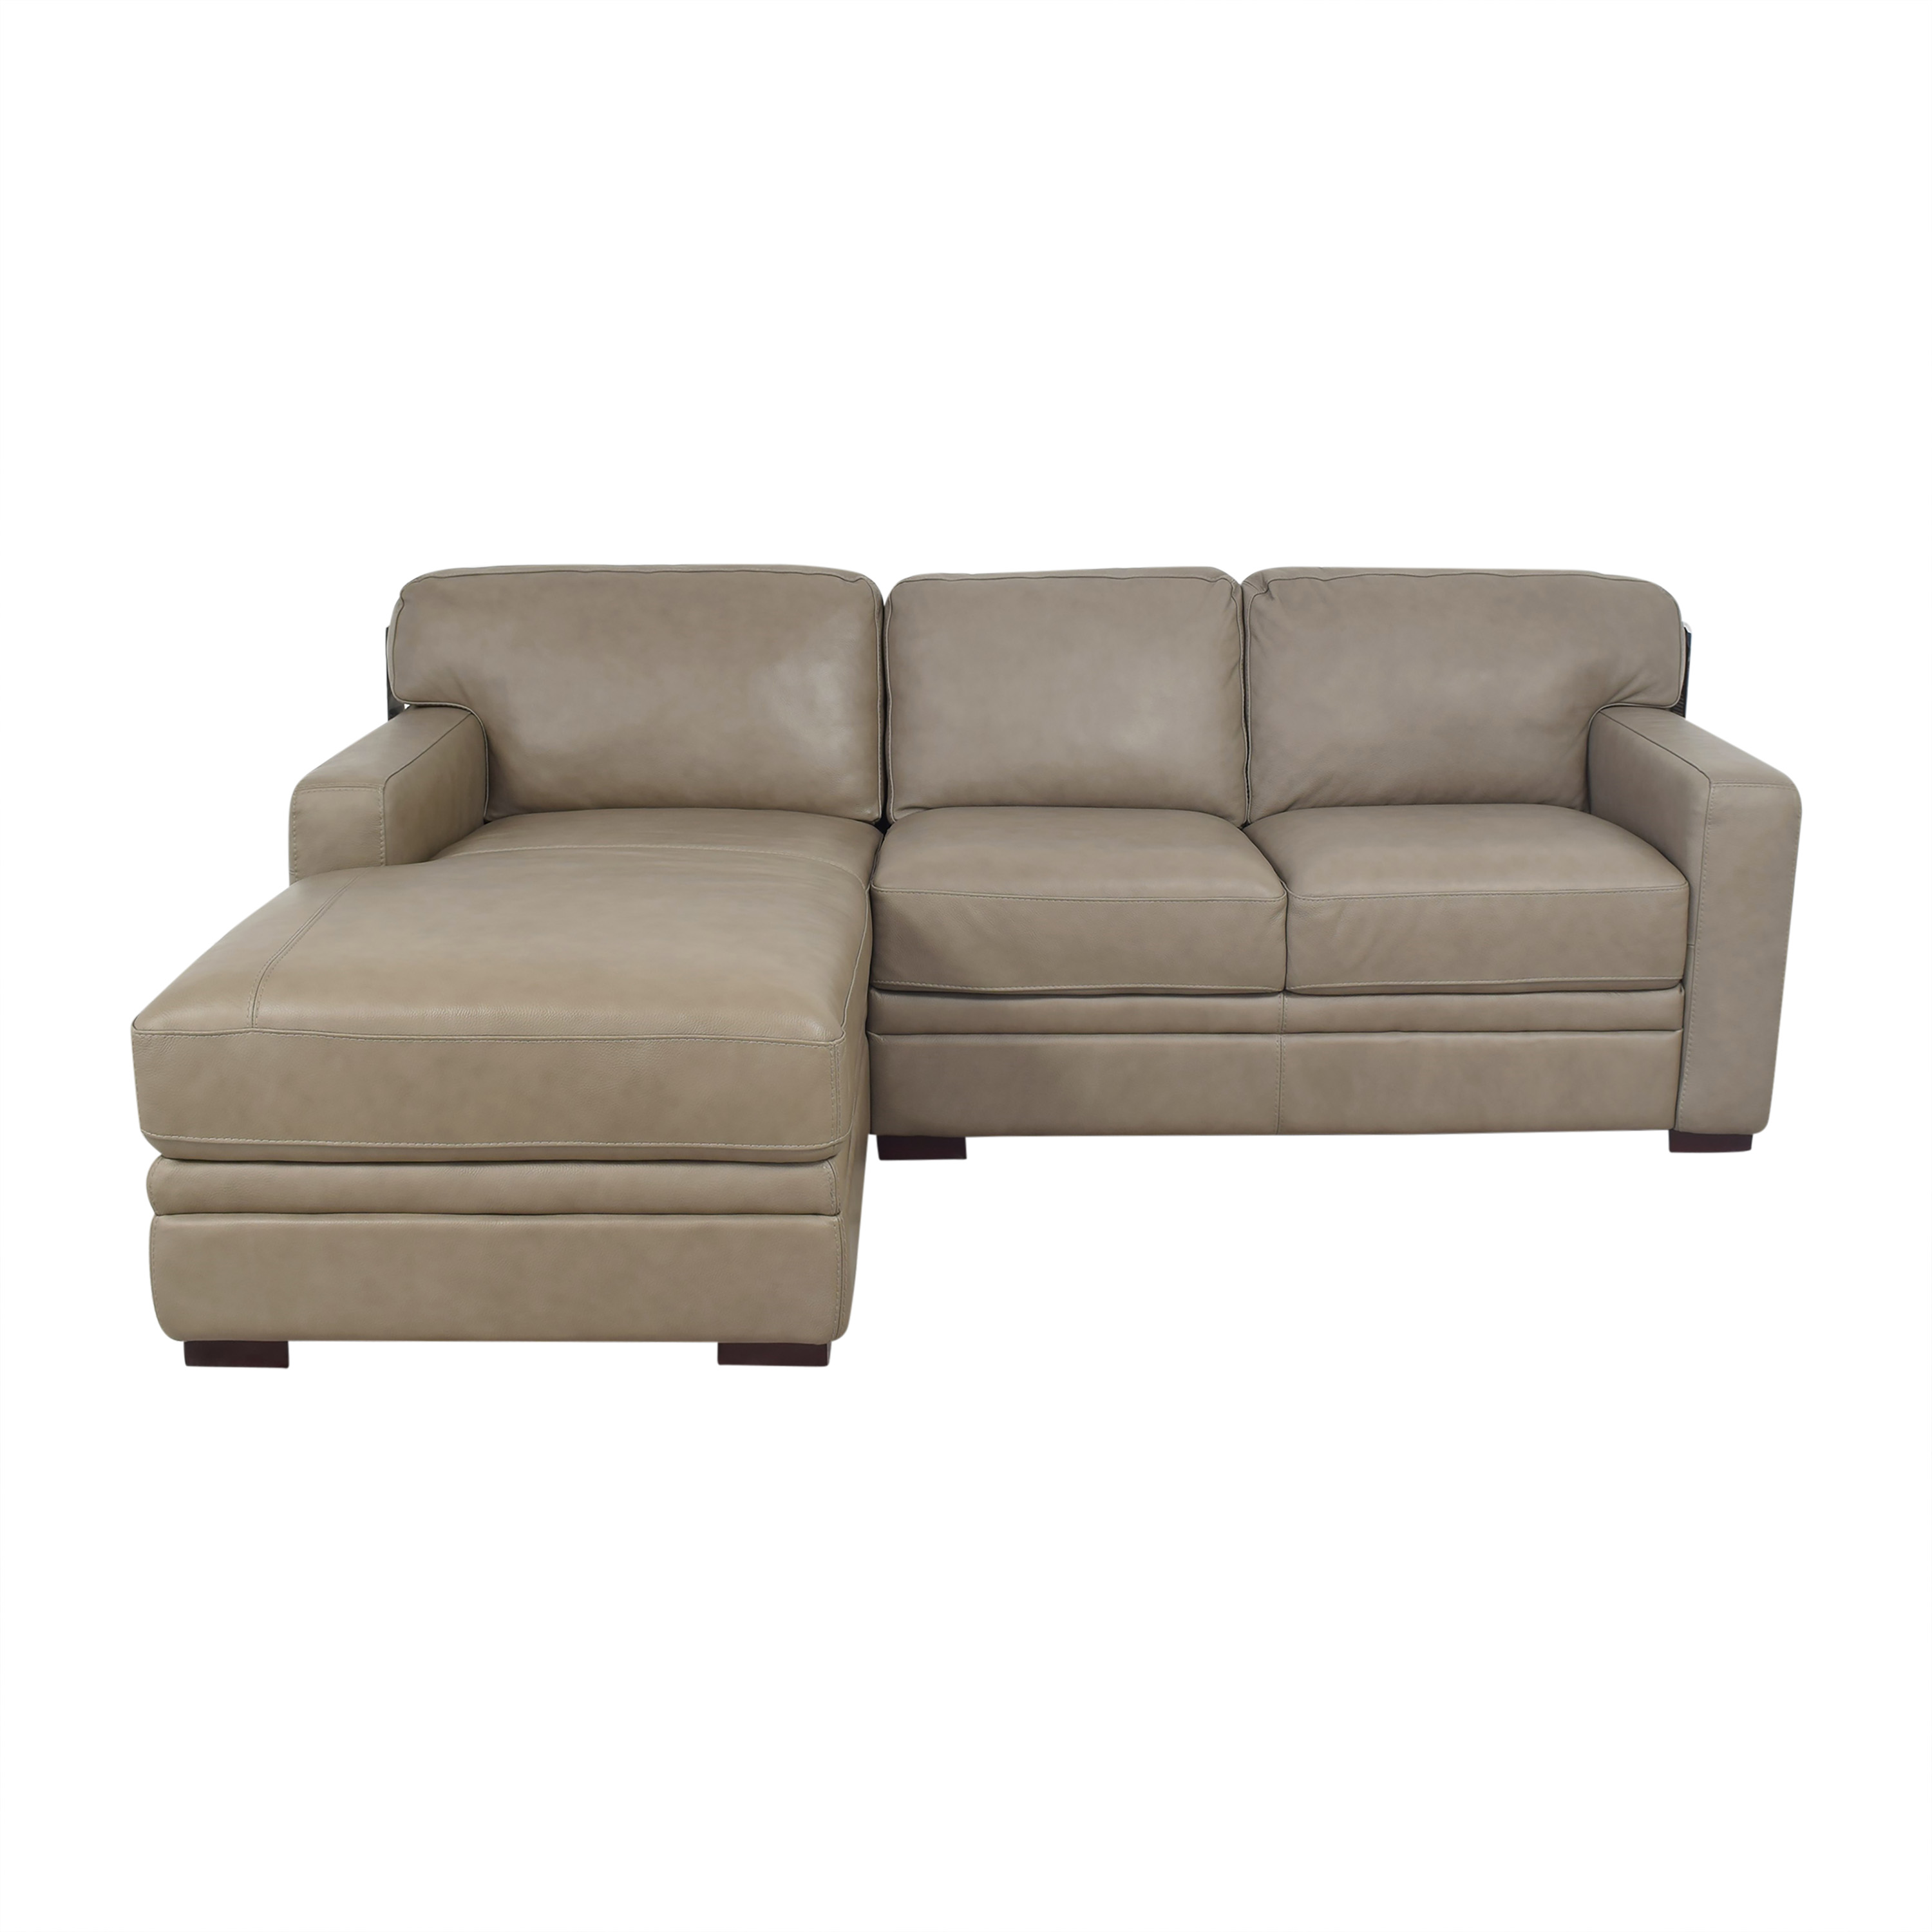 Macy's Macy's Avenell Two Piece Chaise Sectional Sofa brown